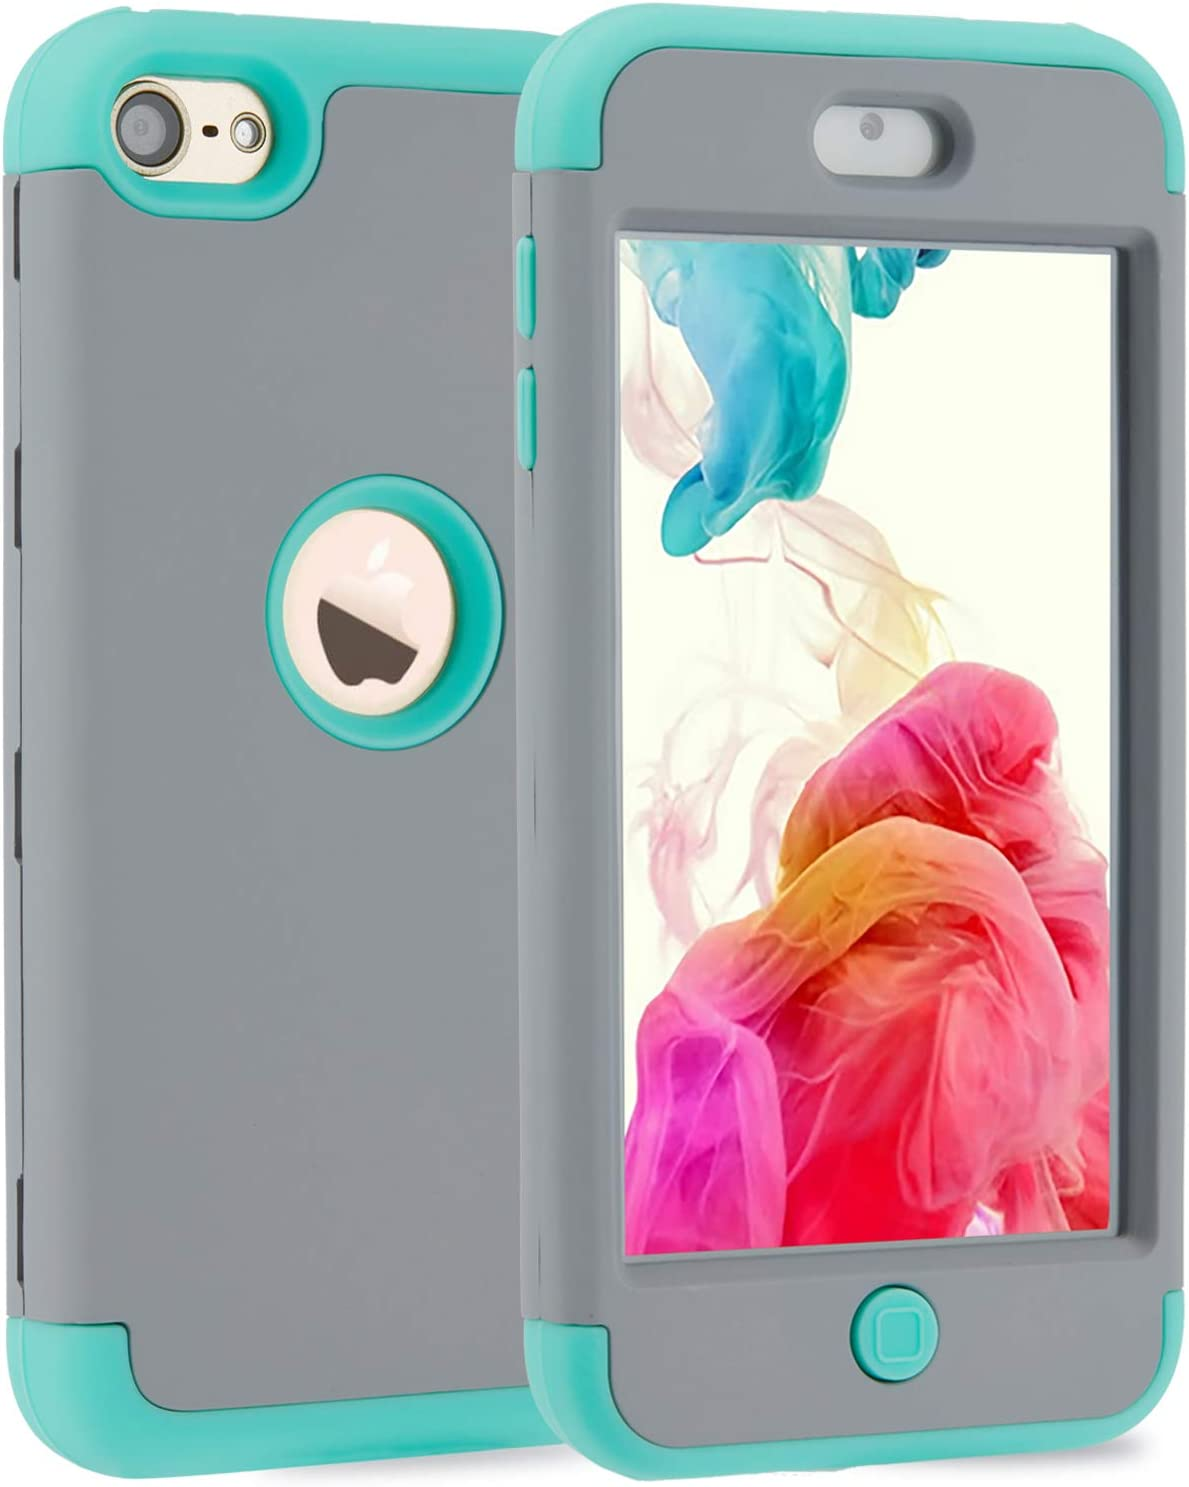 iPod Touch 5 Case, iPod Touch 6 Case, KZONOR 3in1 Hybrid Full Body Impact Resistant Shockproof Soft Silicone Bumper Case Cover for Apple iPod Touch 5th/6th Generation (Grey/Mint Green)